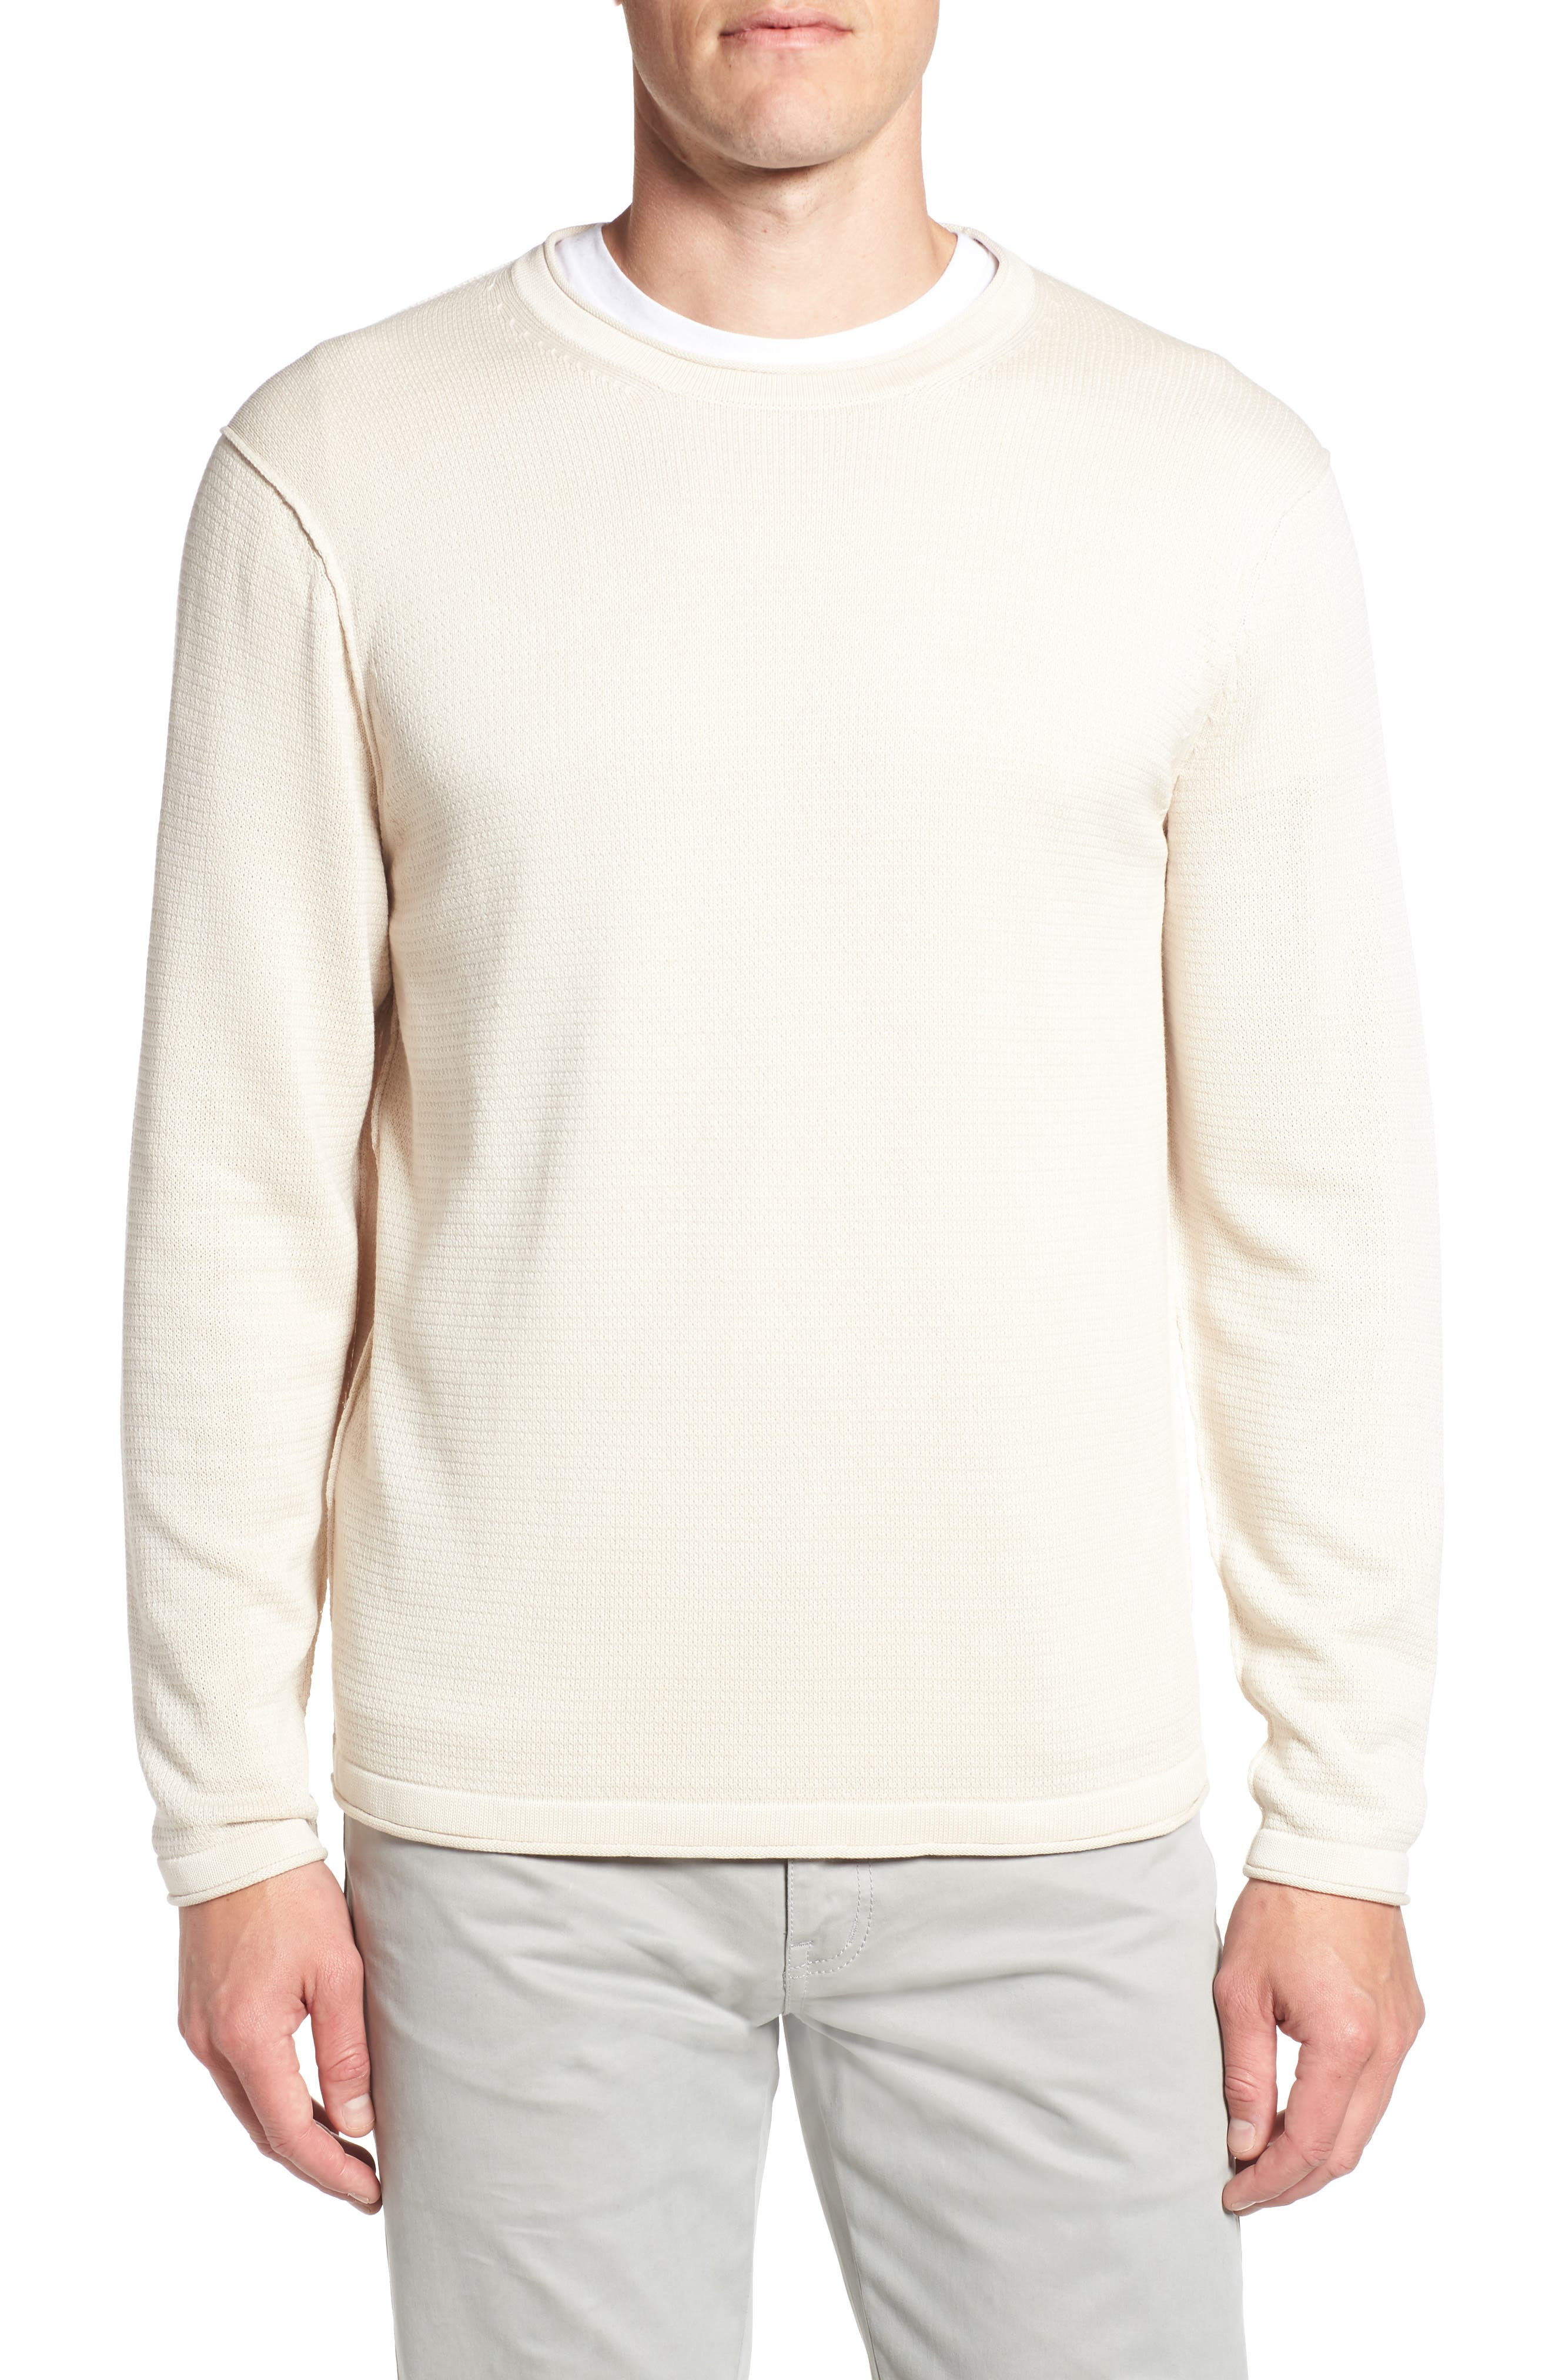 TOMMY BAHAMA South Shore Flip Sweater, Main, color, 200